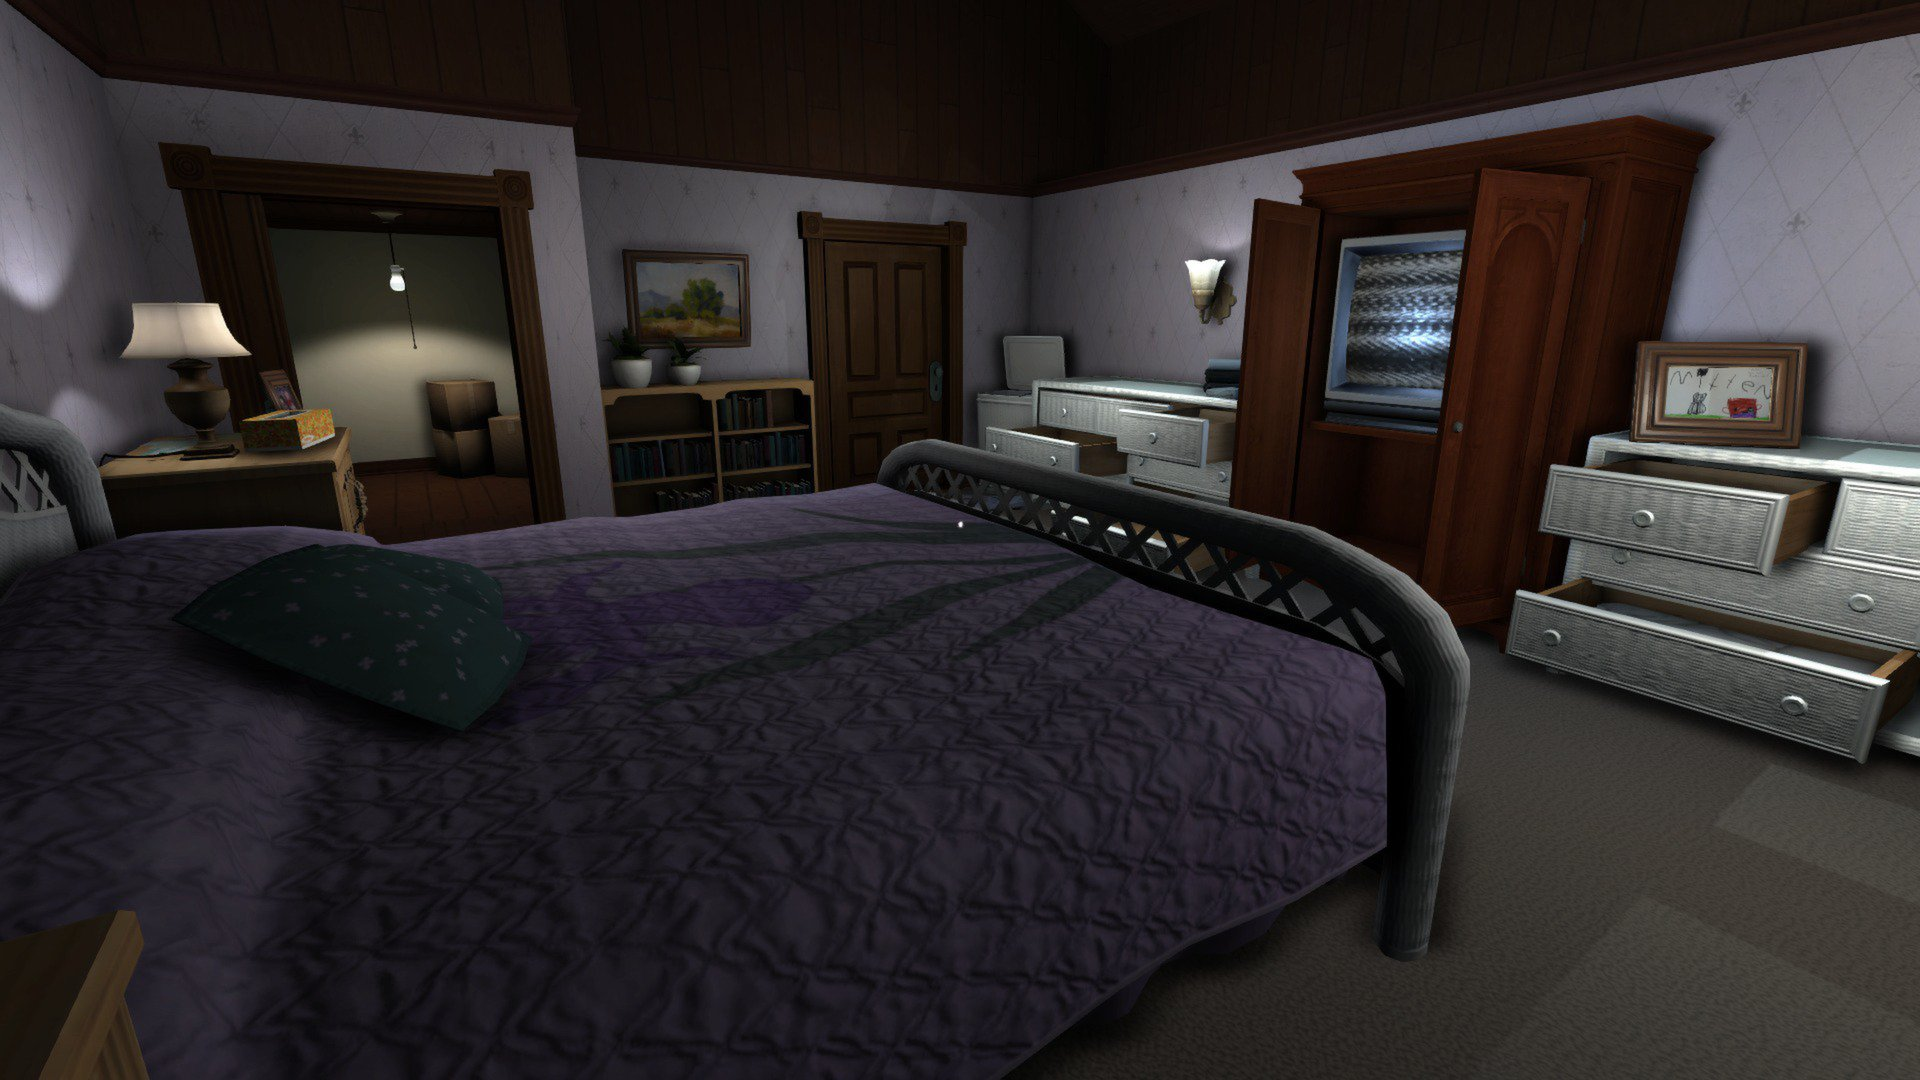 Gone Home 9